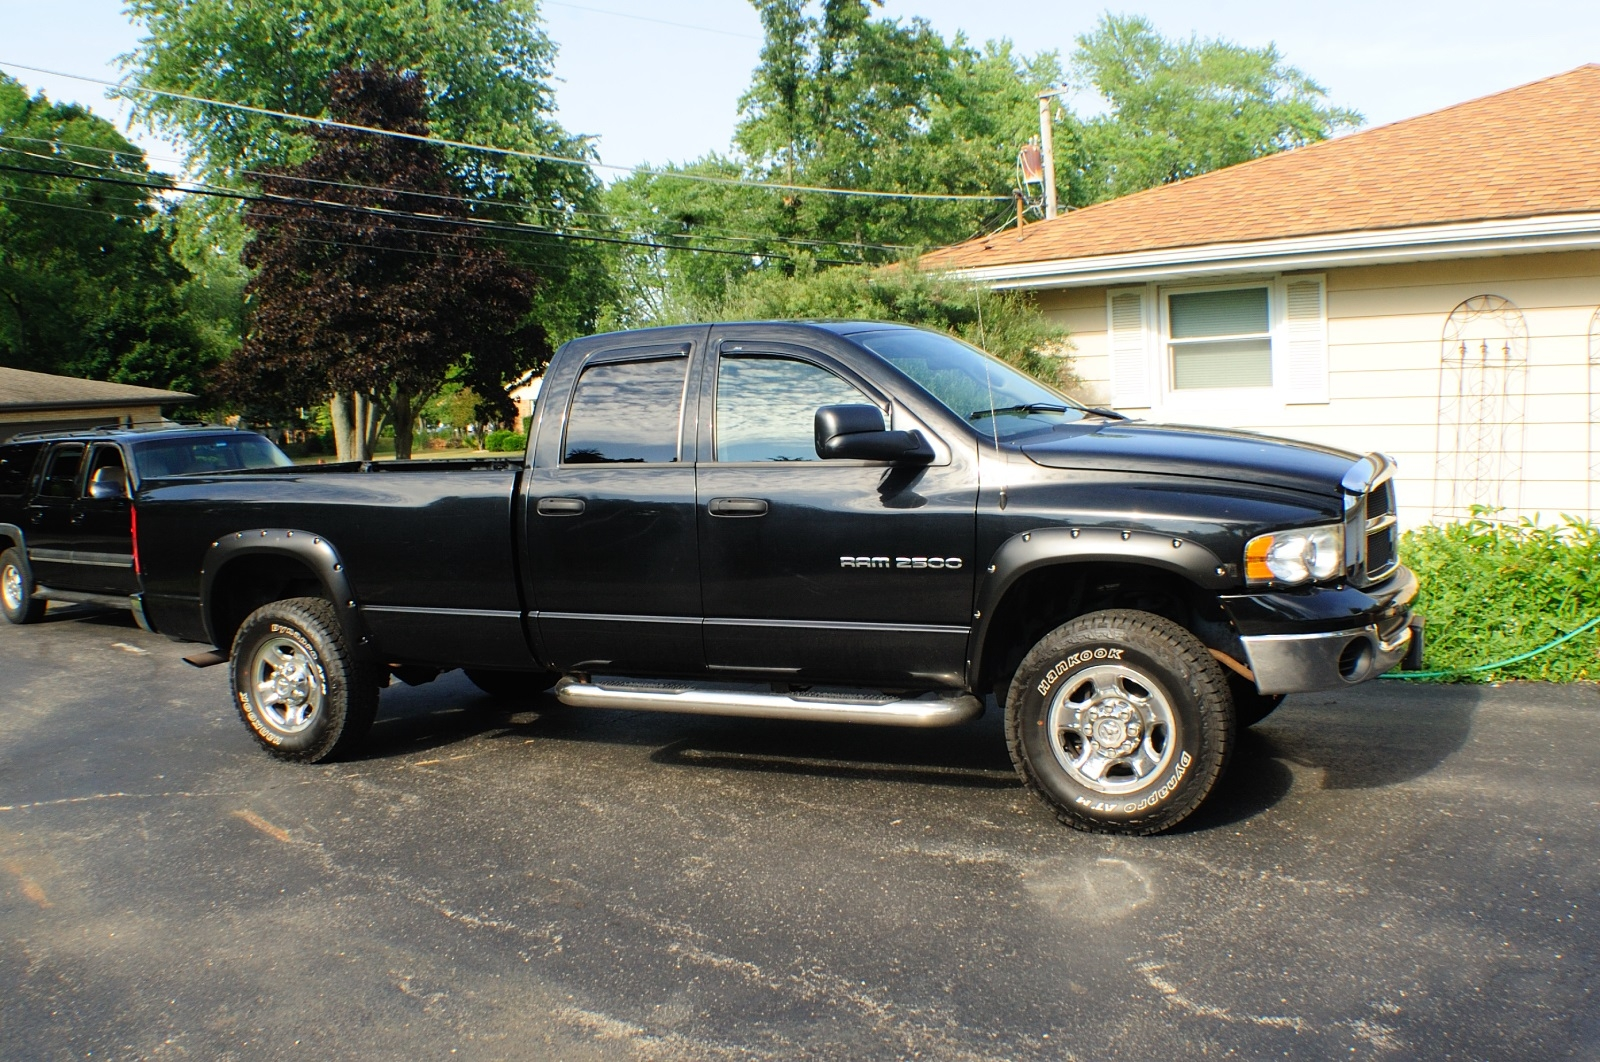 2003 Dodge Ram Black 2500 Hemi Heavy Duty Slt 4x4 Sale Used Truck Bannockburn Barrington Beach